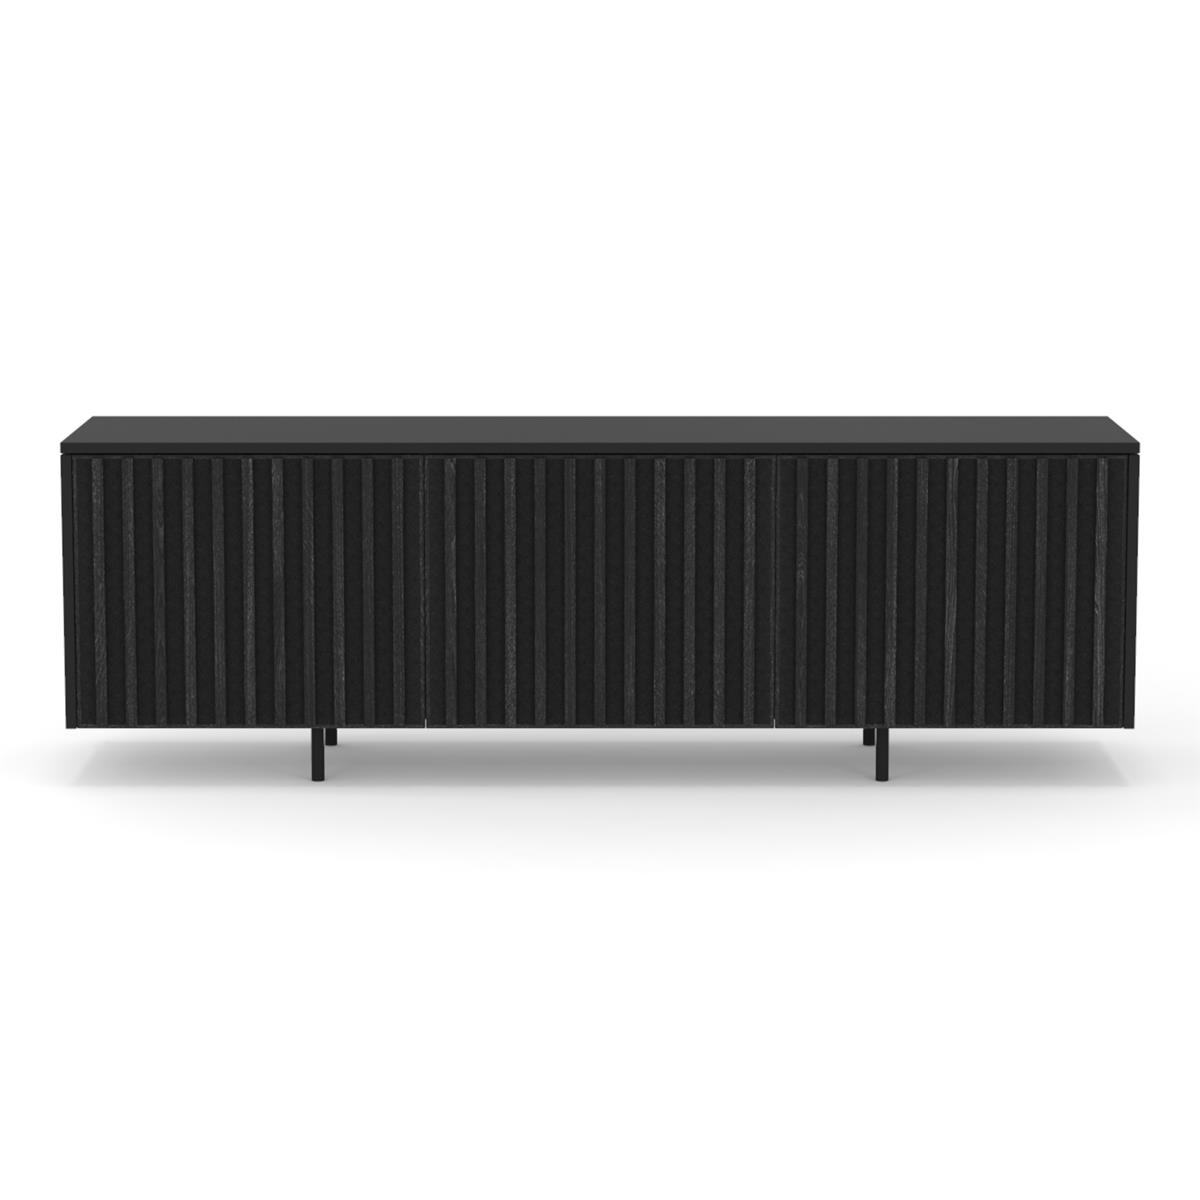 dB Silent Sideboard - Anthracite & Anthracite